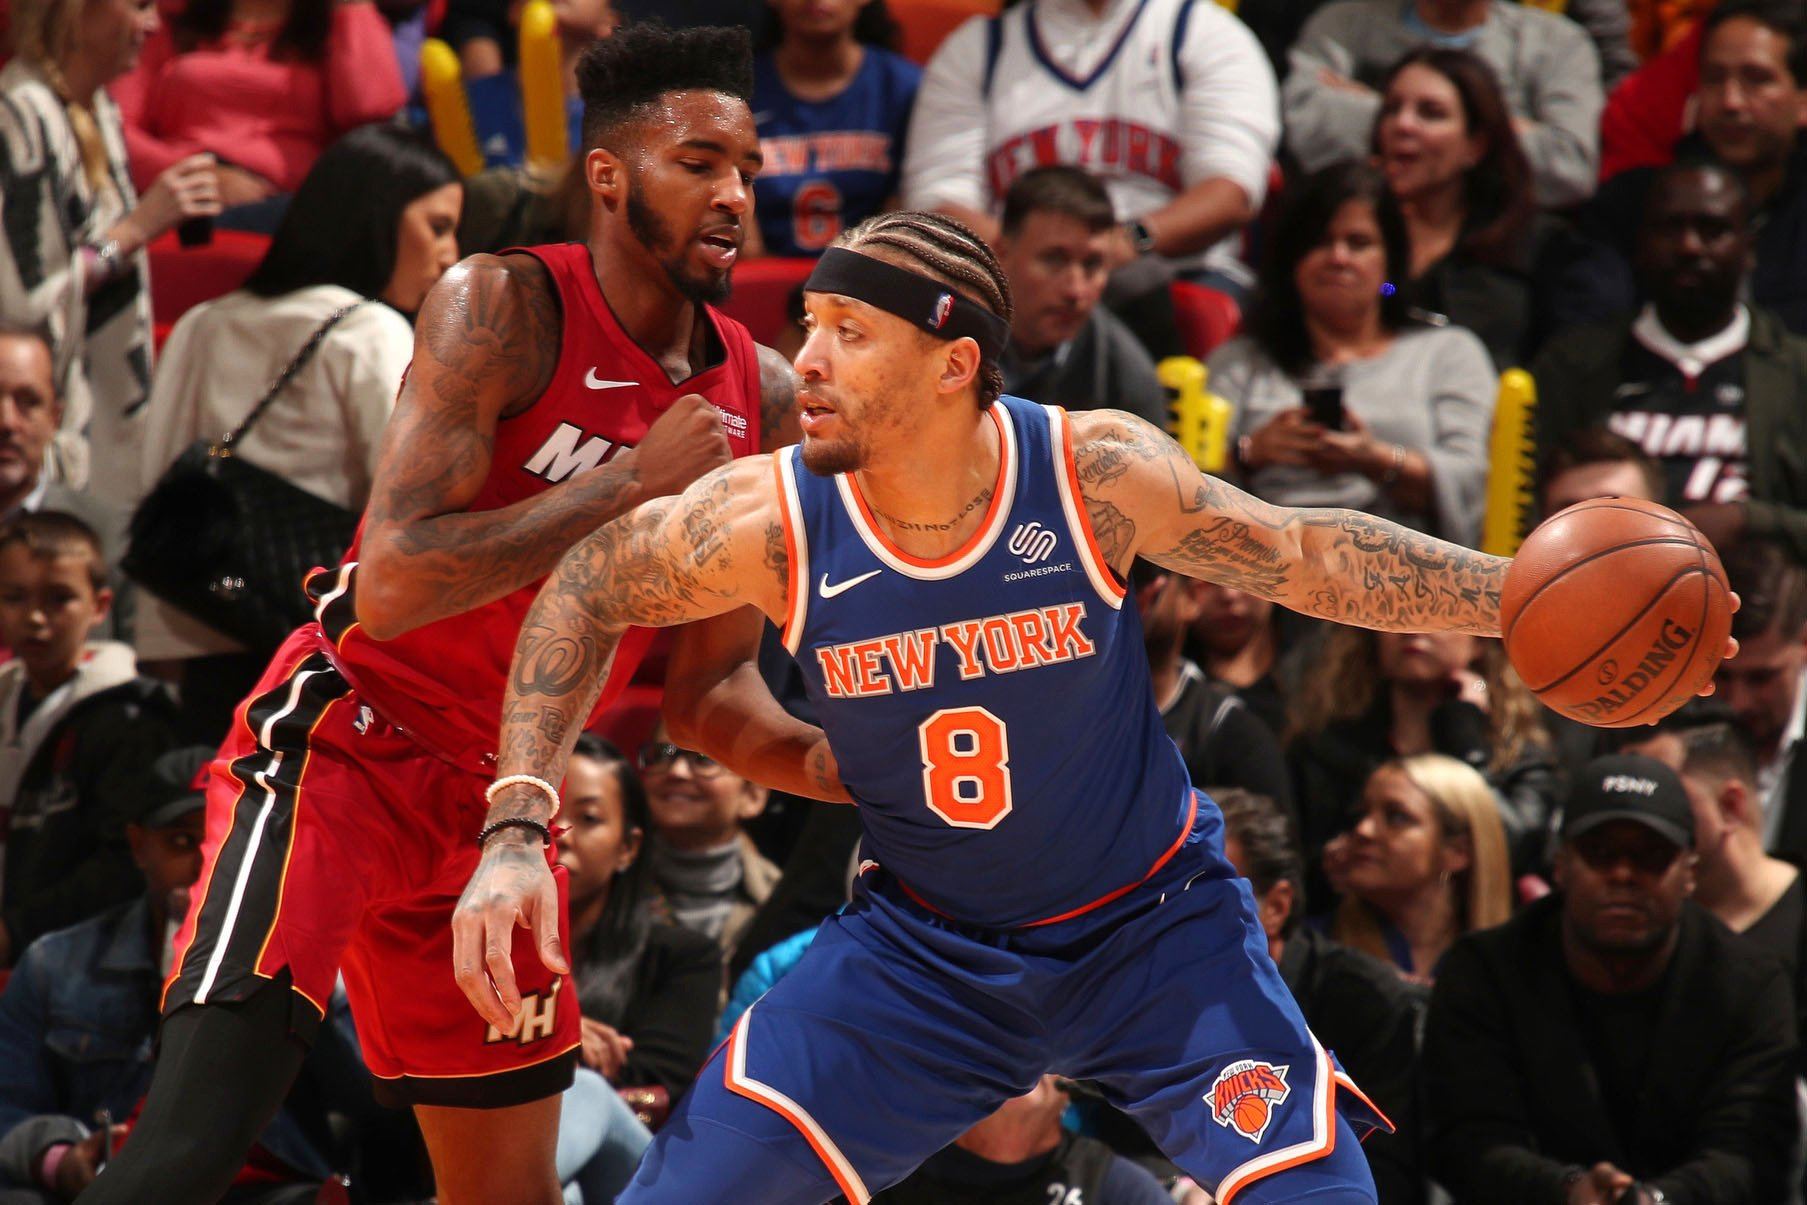 Beasley hurt late, Porzingis struggles as Knicks fall in OT